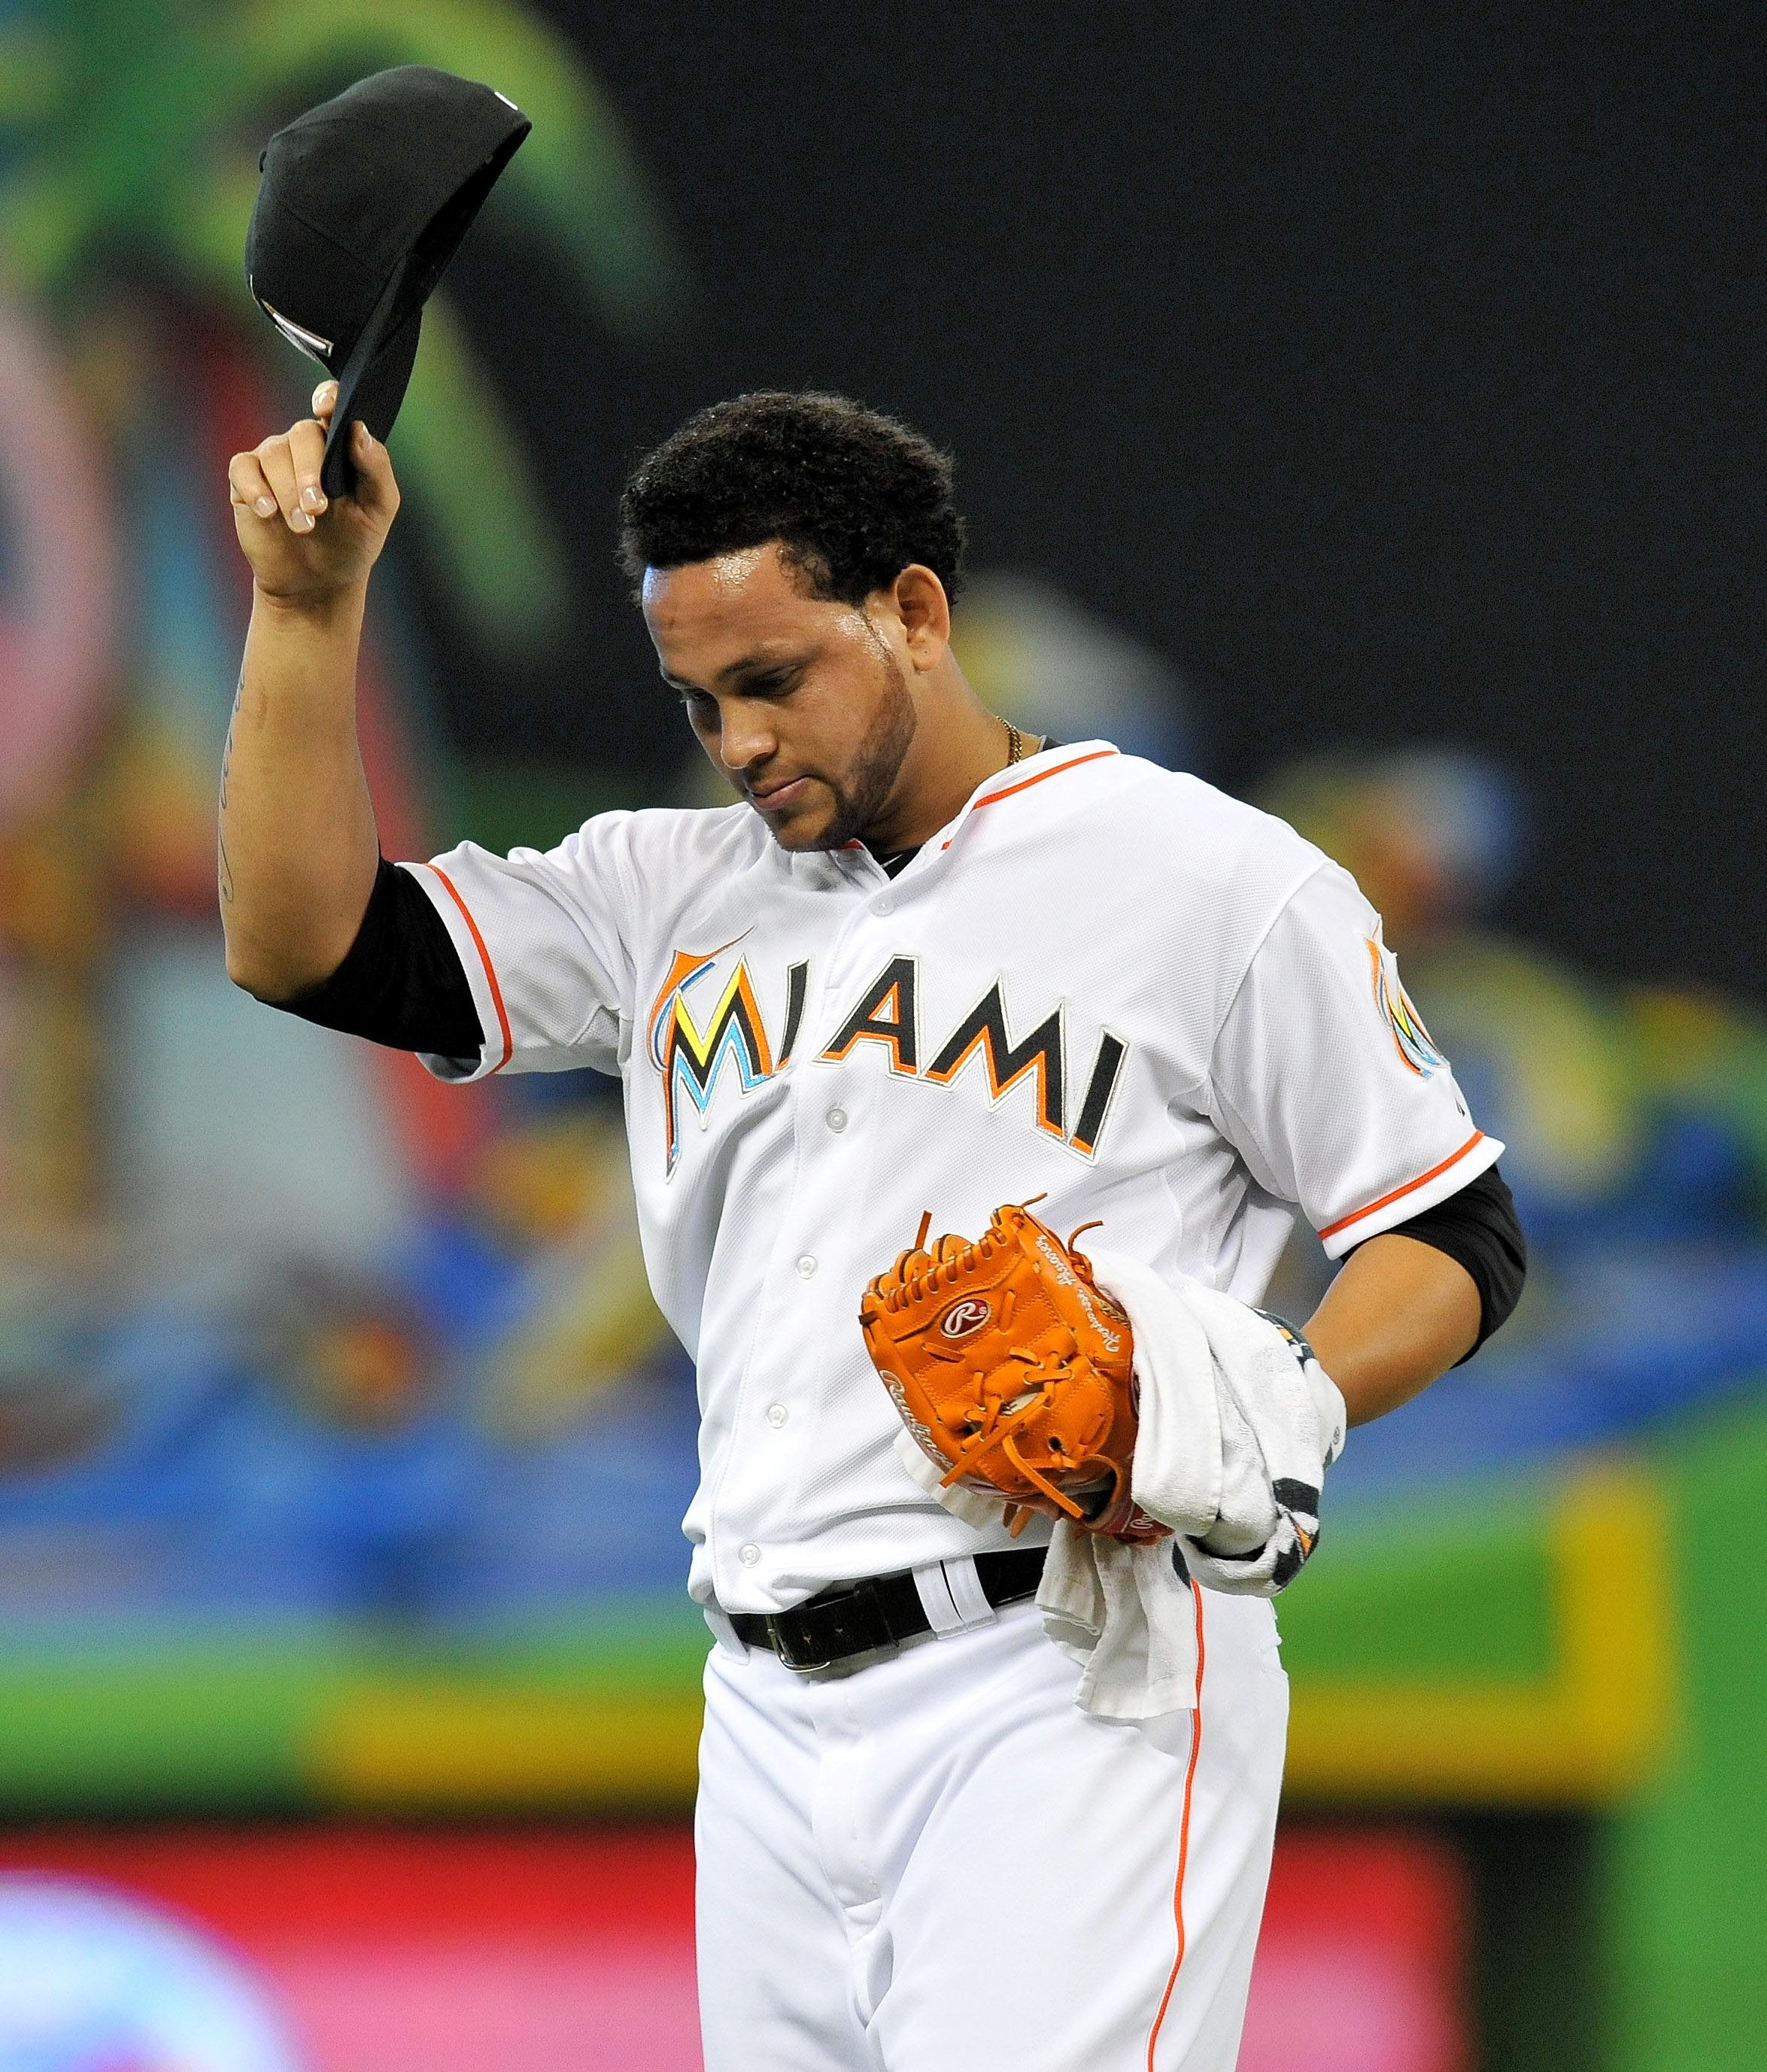 Henderson Alvarez tips his cap during his win over the Tigers. (USA Today)